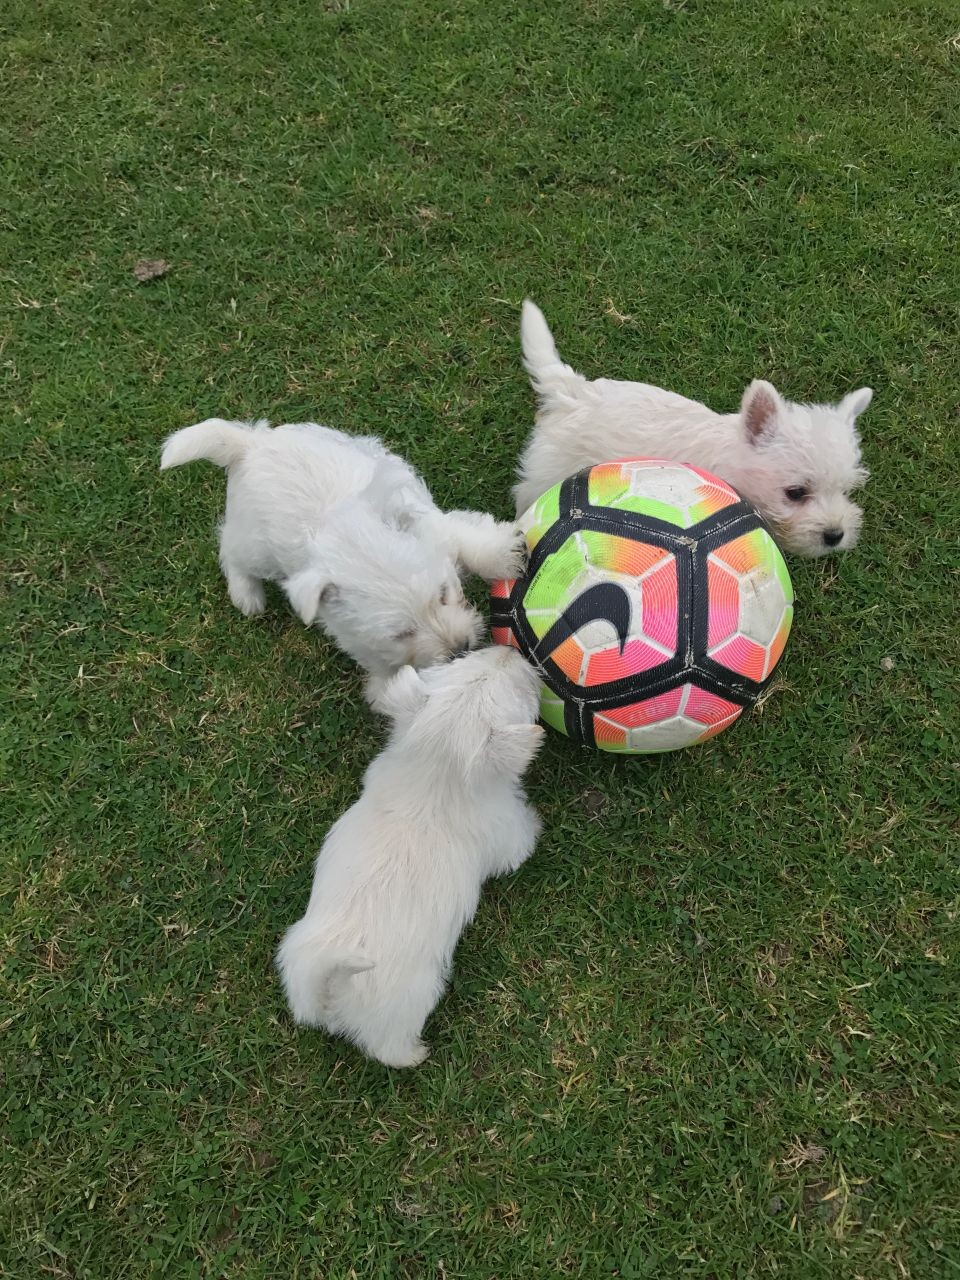 West Highland White Terrier Puppies For Sale | St. Louis ...